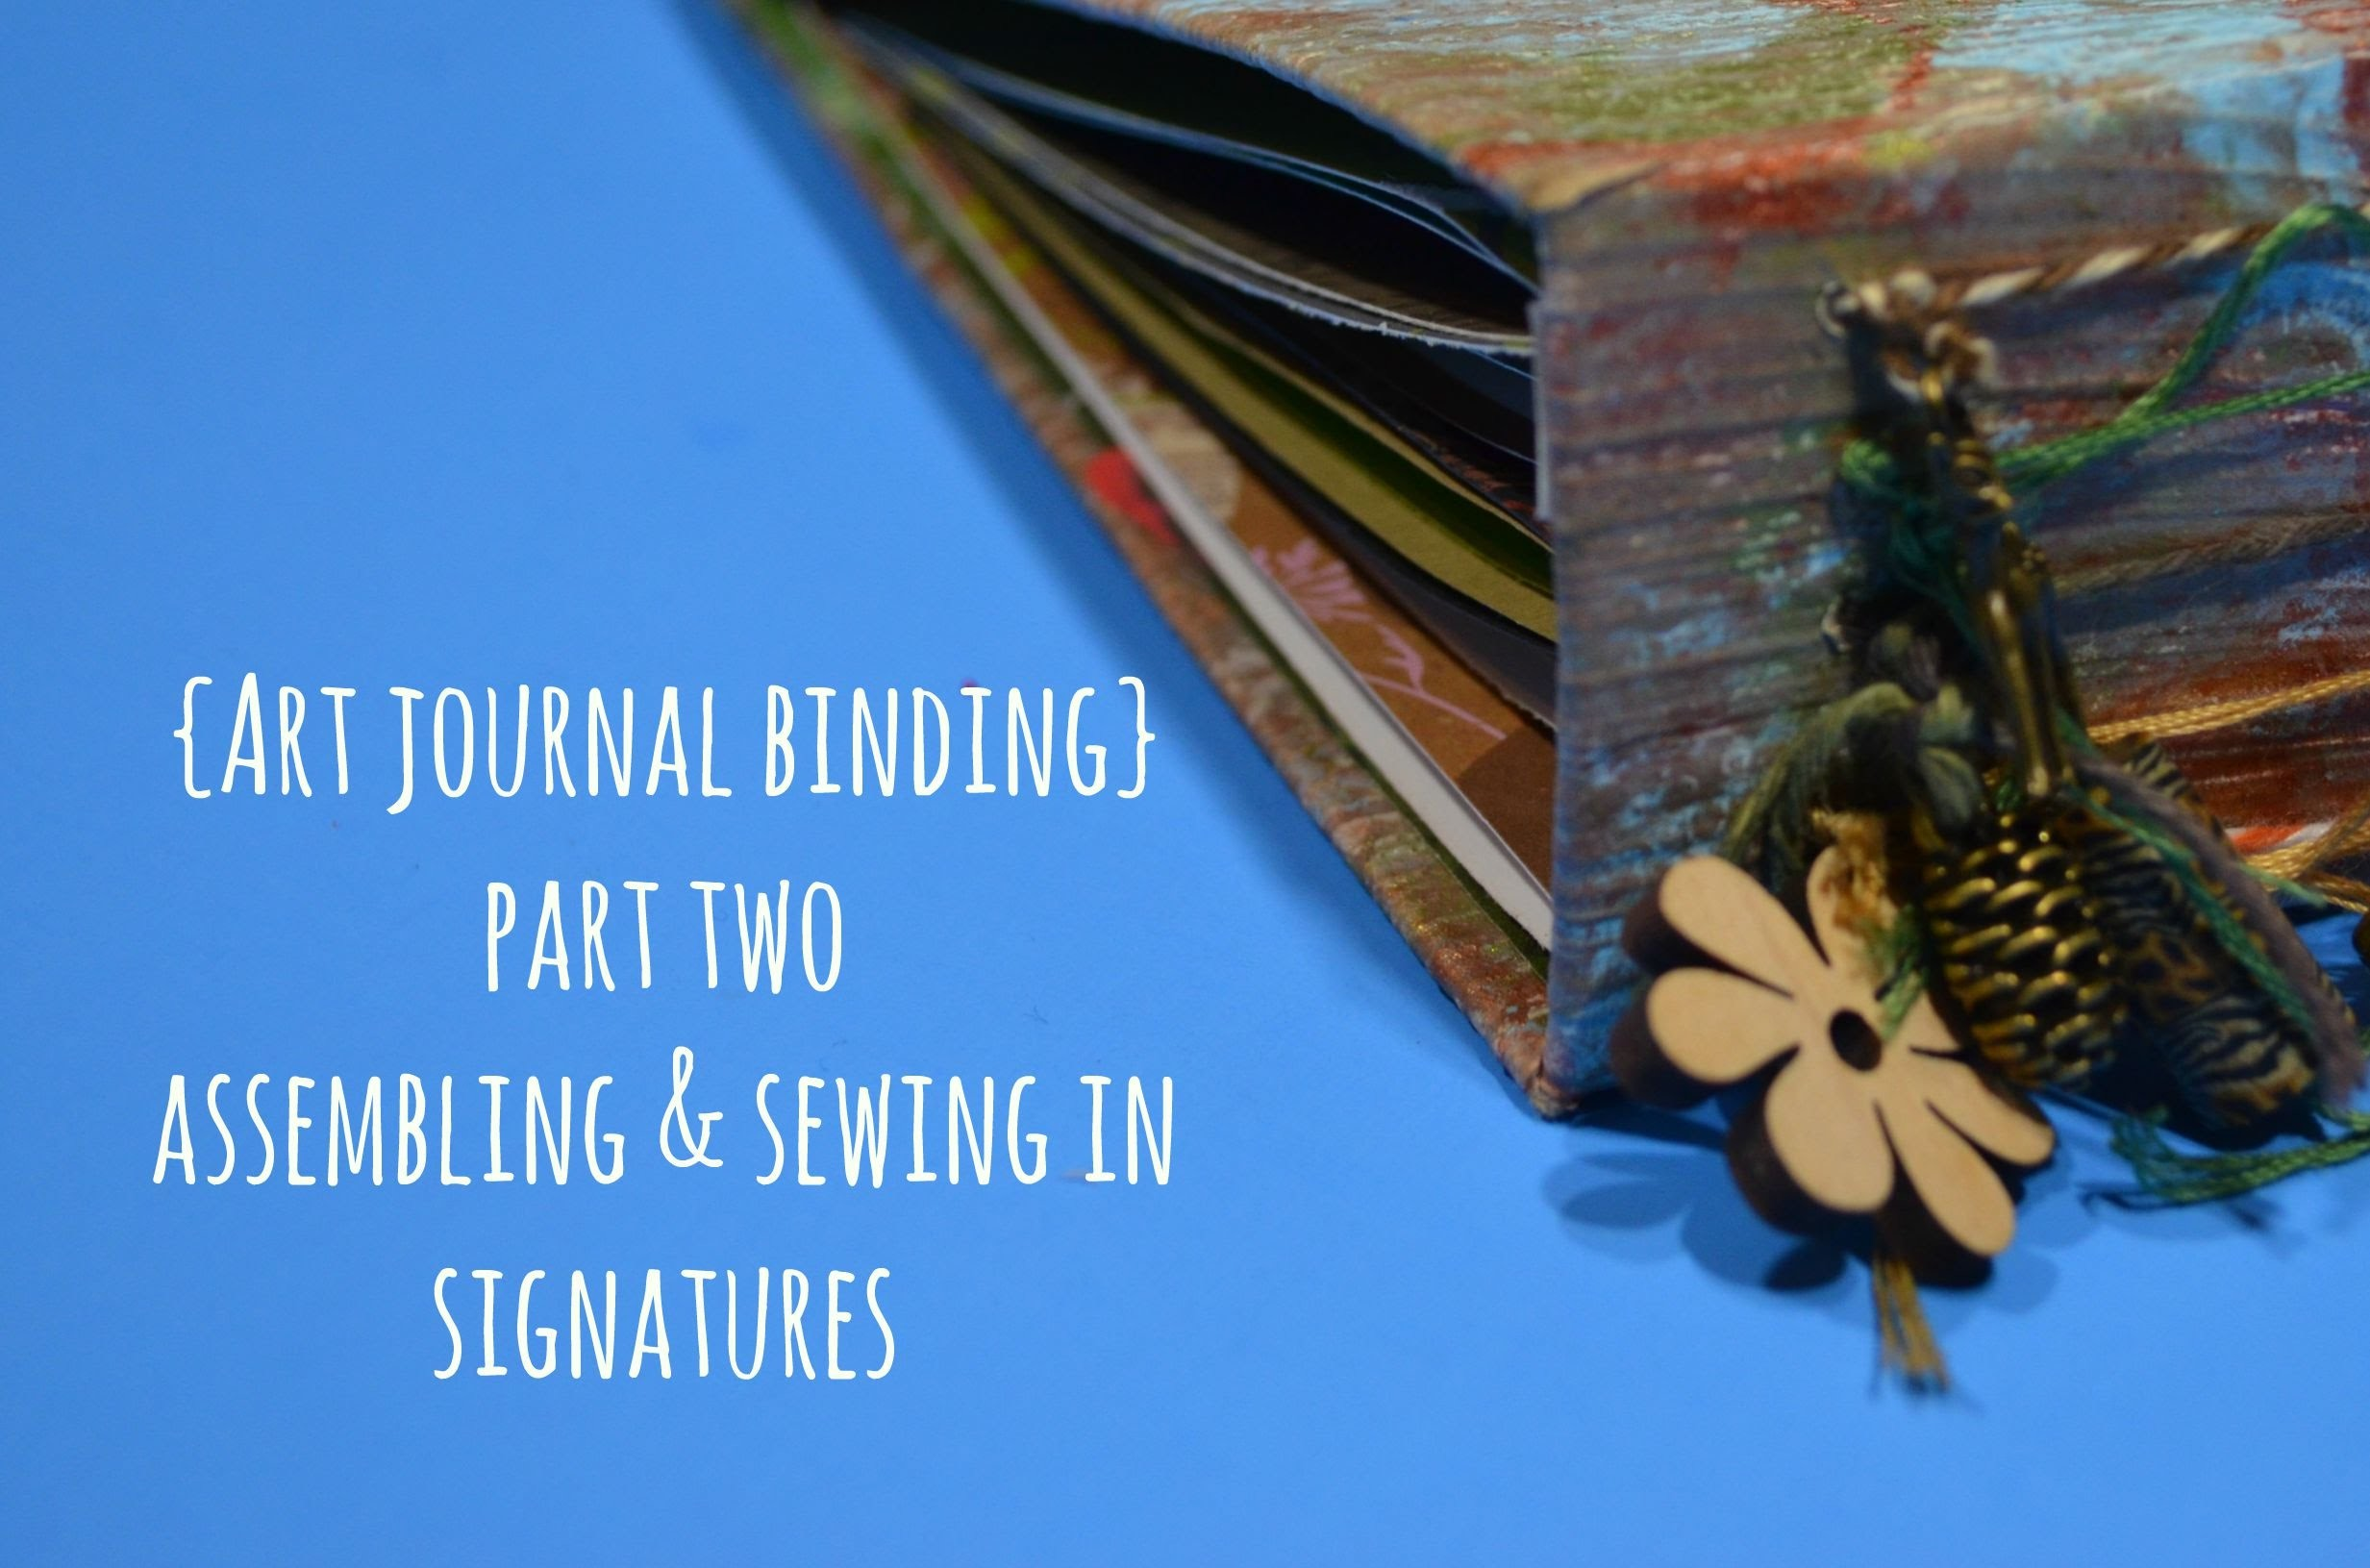 Art Journal Binding {Pt.2 - Assembling and Sewing in Signatures}